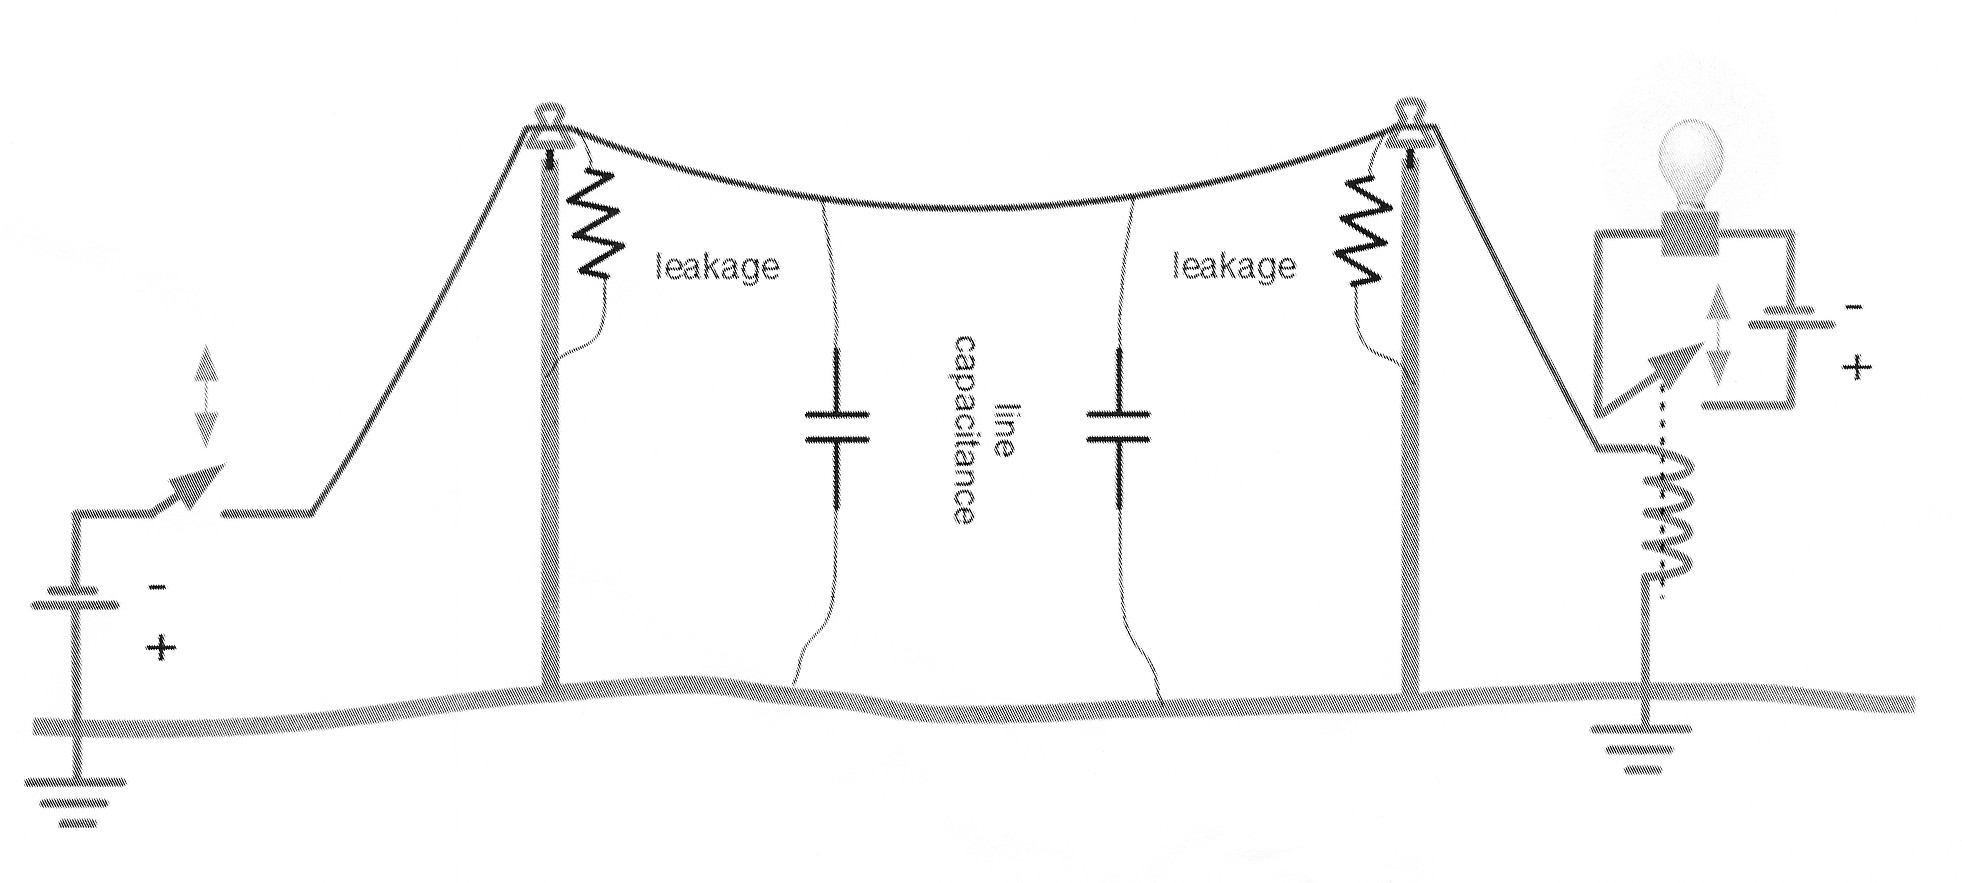 3 phase 4 wire service entrance diagram